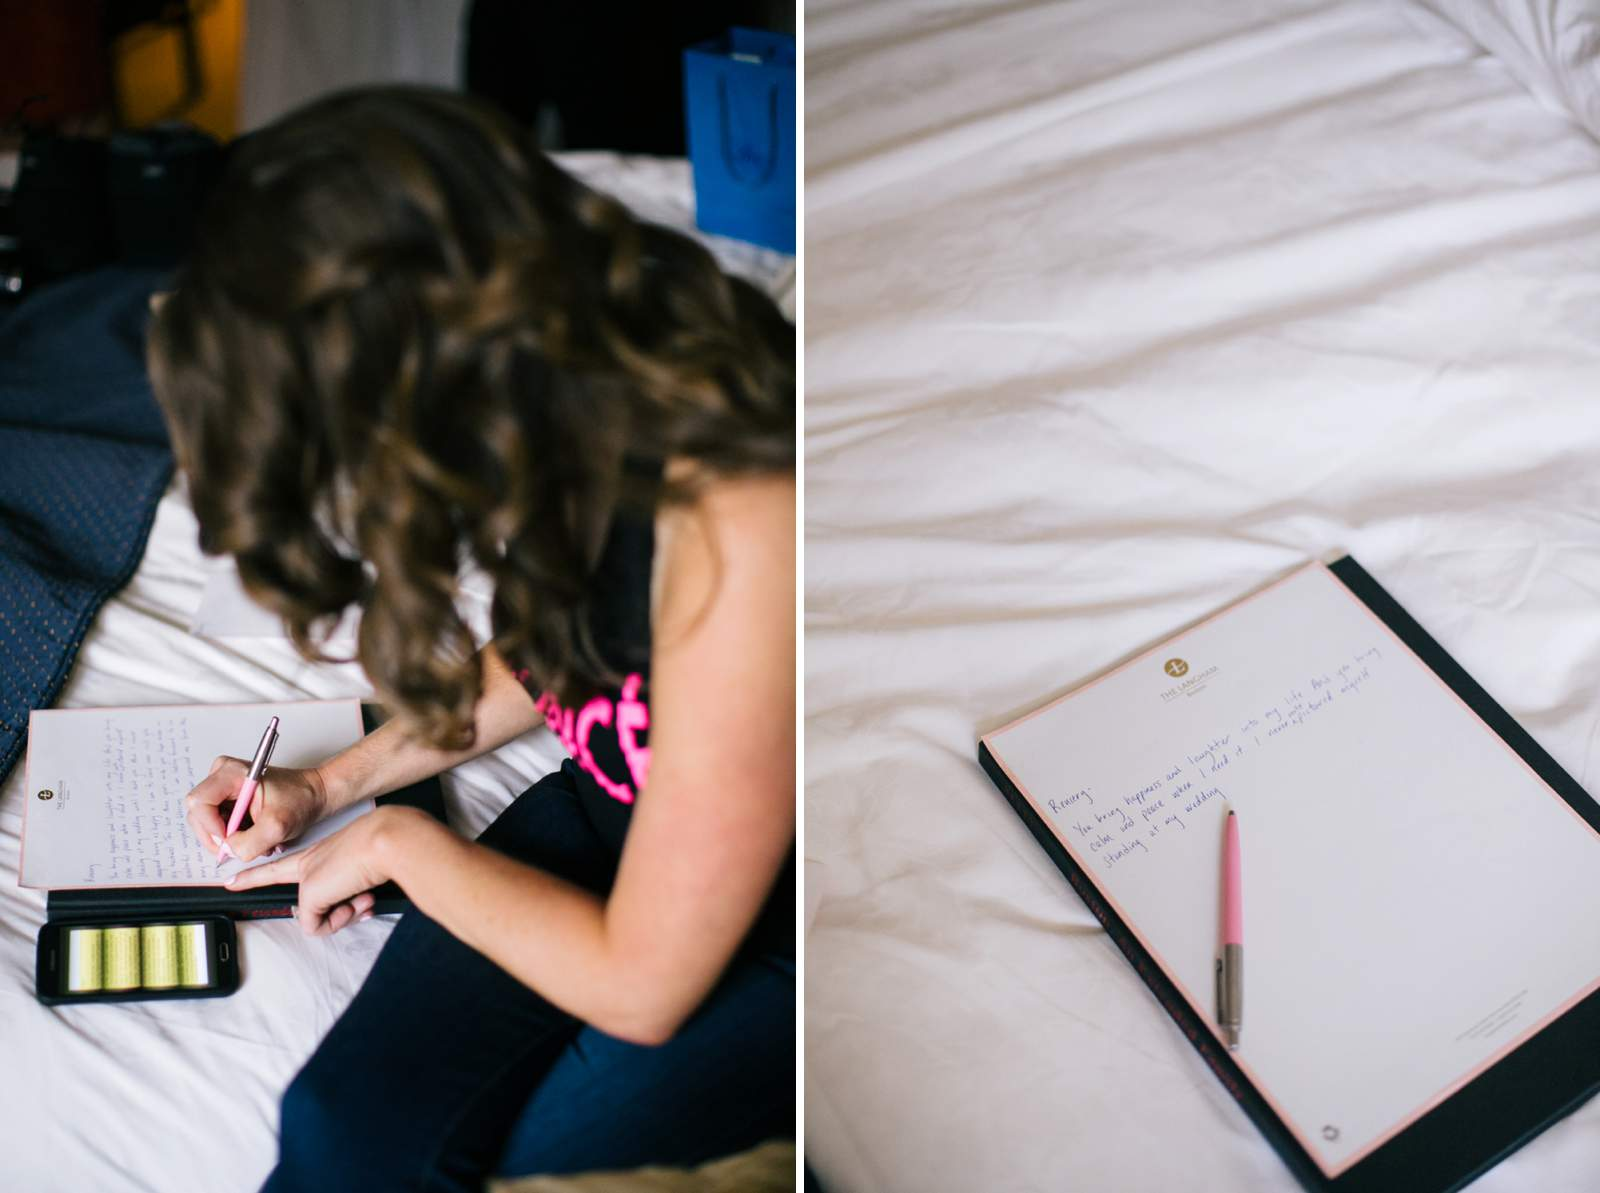 Boston Wedding Photography, getting ready, Langham hotel, bride, groom, letters